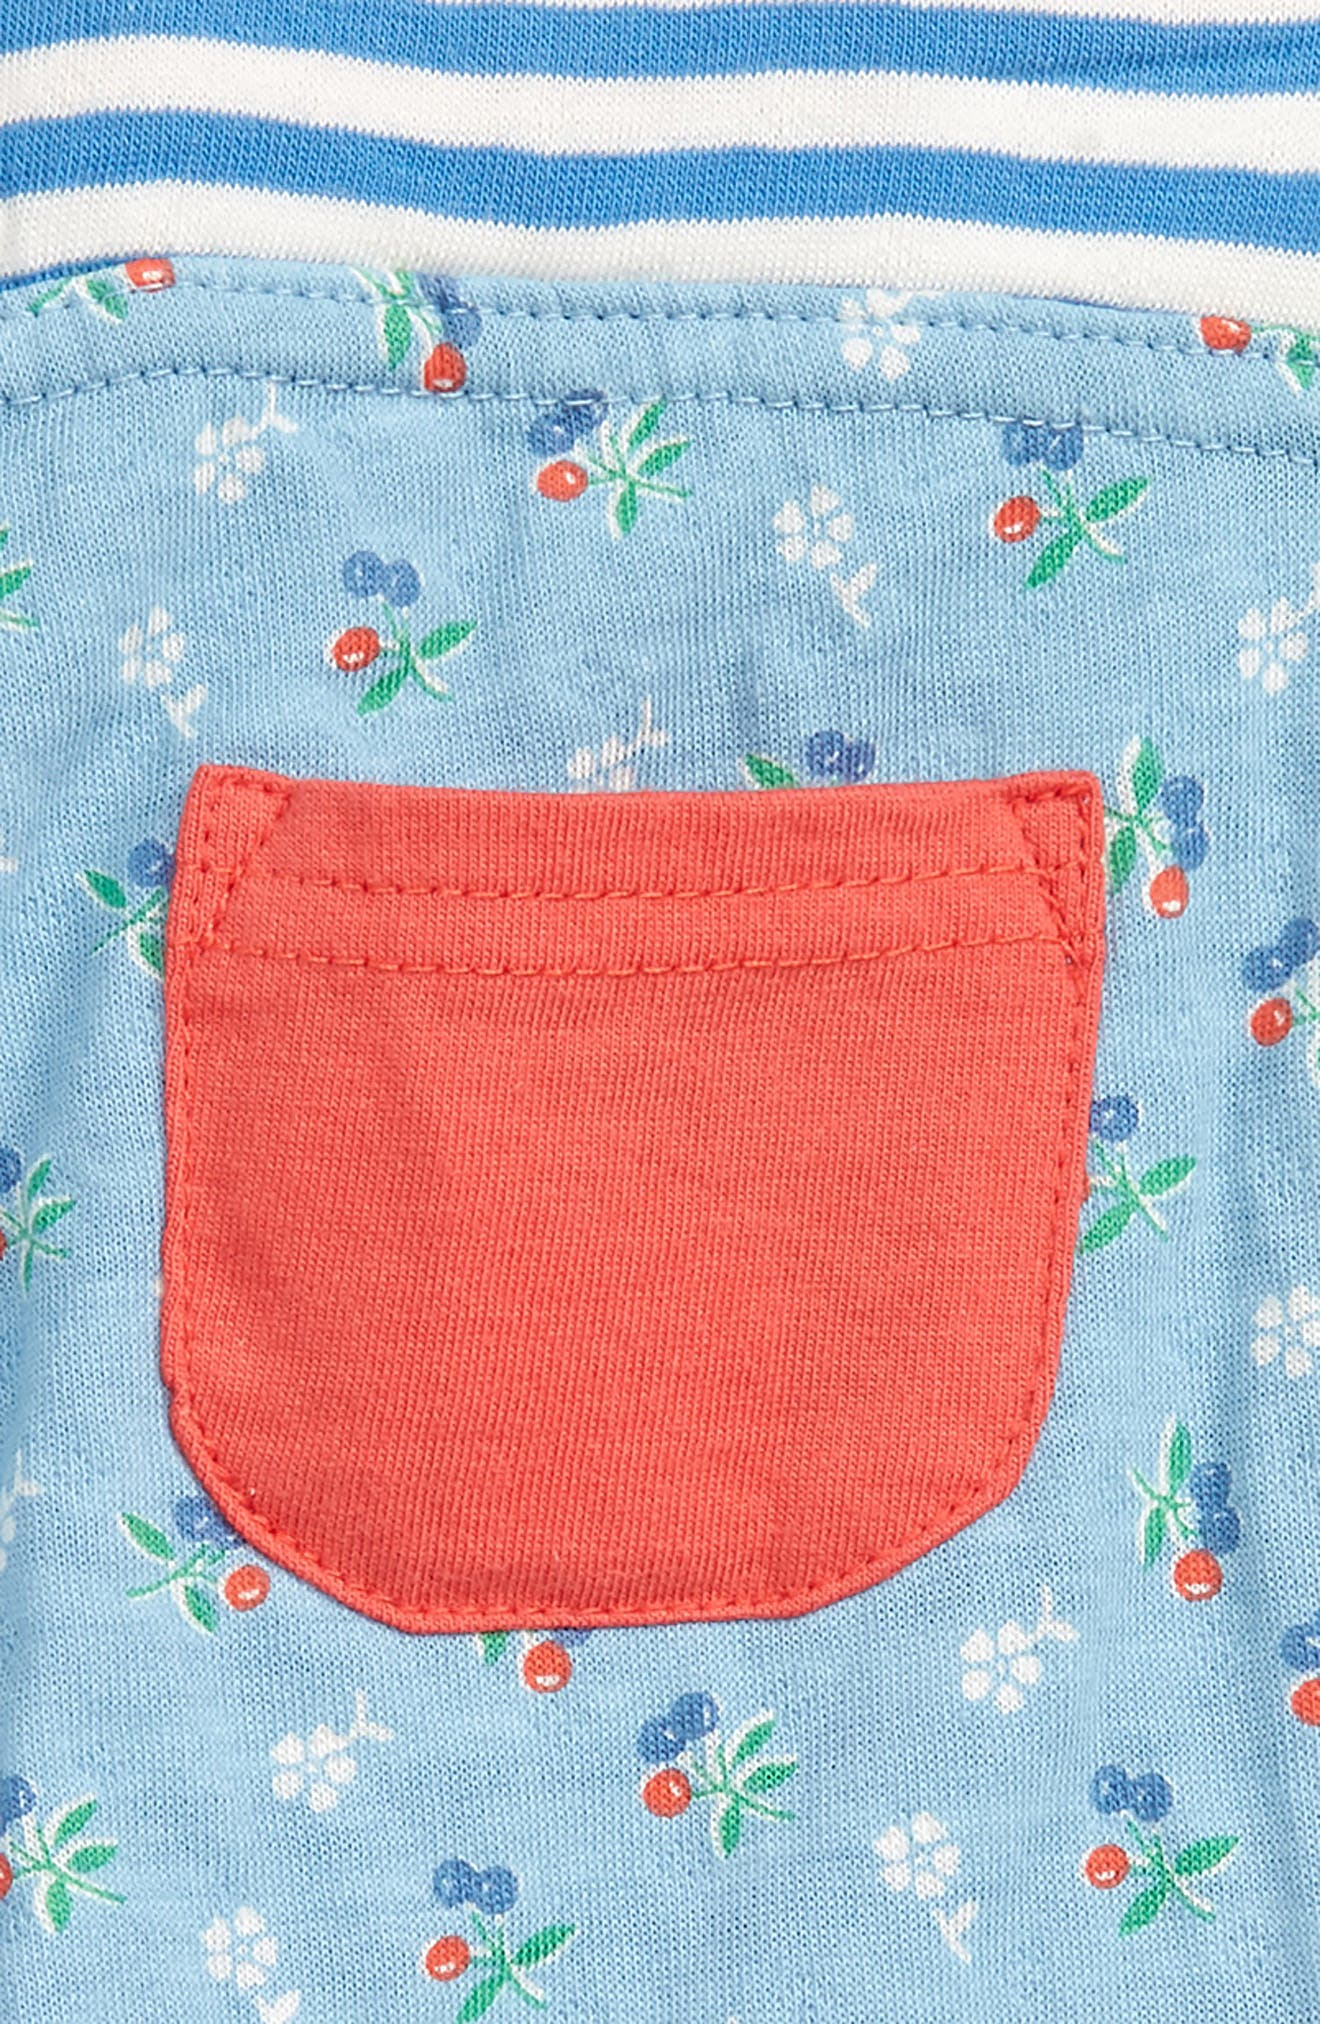 MINI BODEN, Mixed Print Cozy Knit Pants, Alternate thumbnail 3, color, LIGHT SKY BLUE VNTG CHERRY